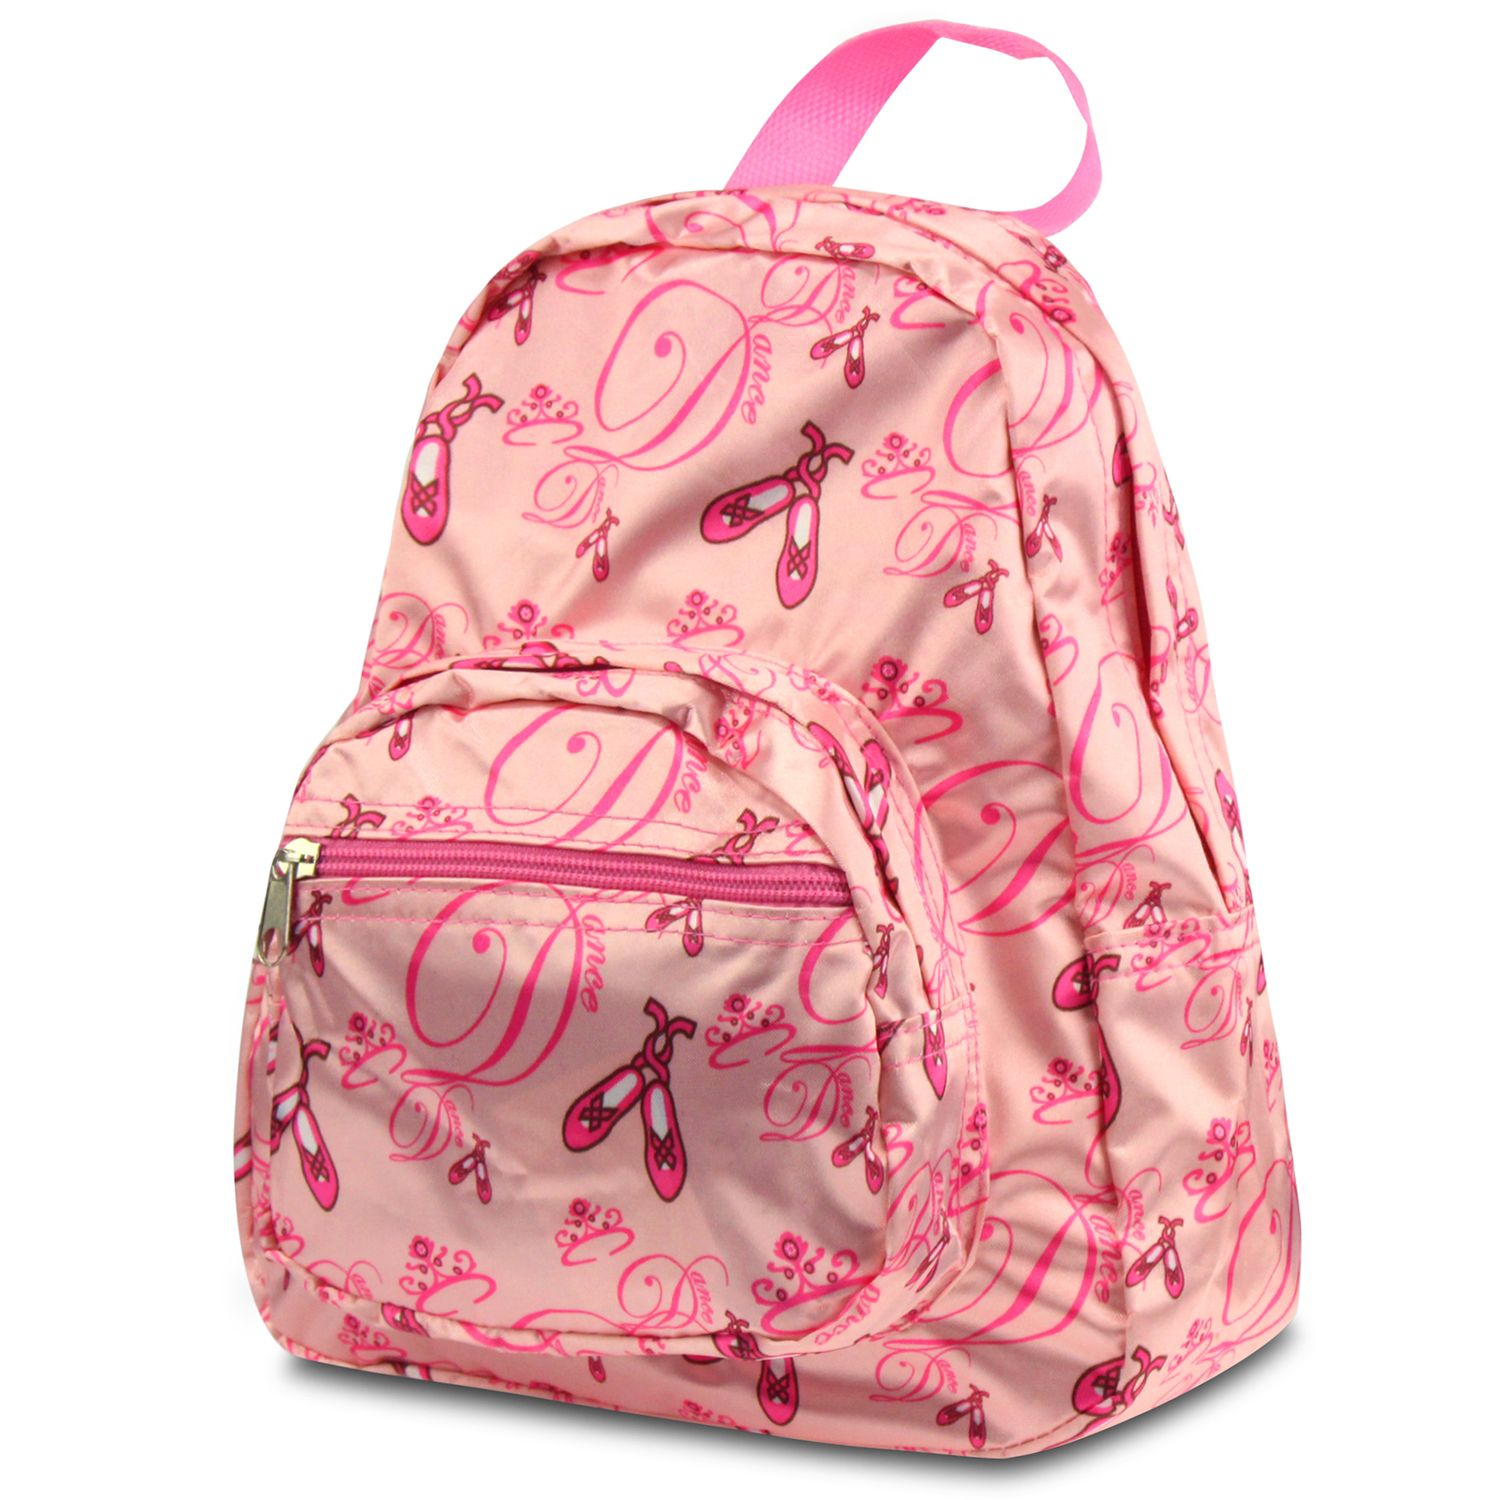 Kids Backpack School Bag by Zodaca Fashion Small Bookbag Shoulder Children - Pink Ballerina